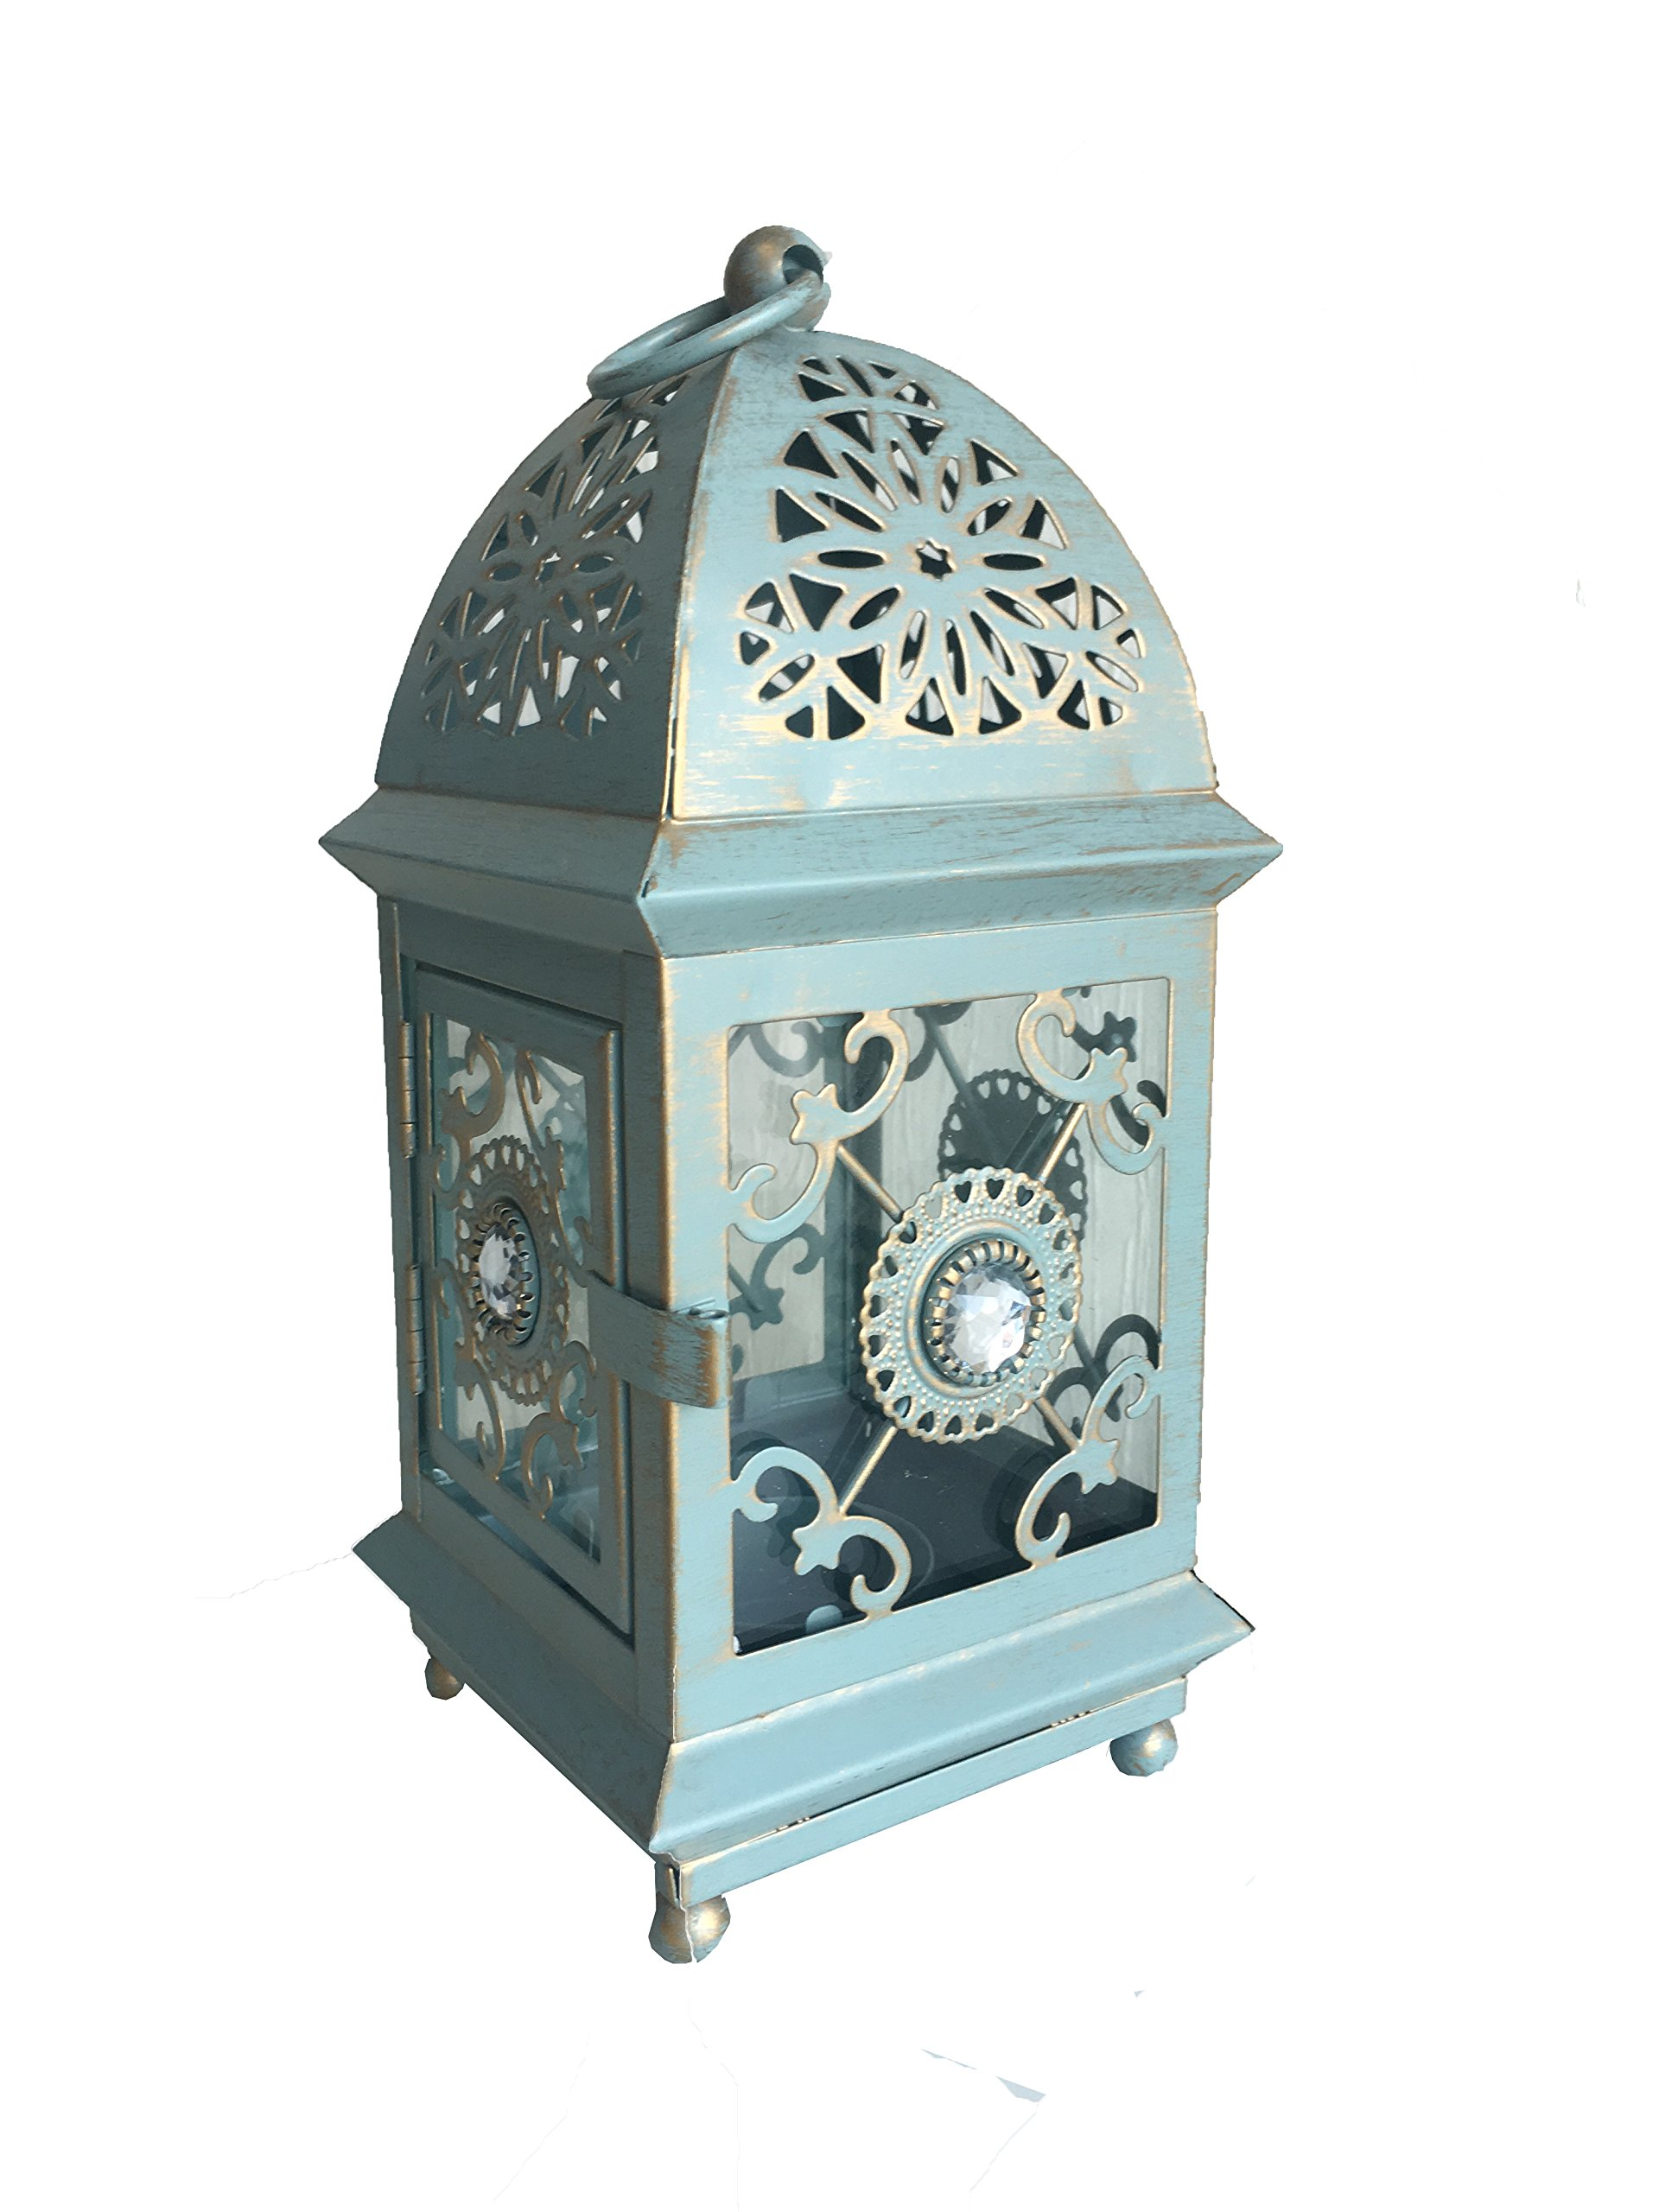 Gifts & Decor SIKOO Antique Style Distressed Metal Carved Candle Lantern Holder Candle Holder Hanging Lantern,Blue,8.2 Inch